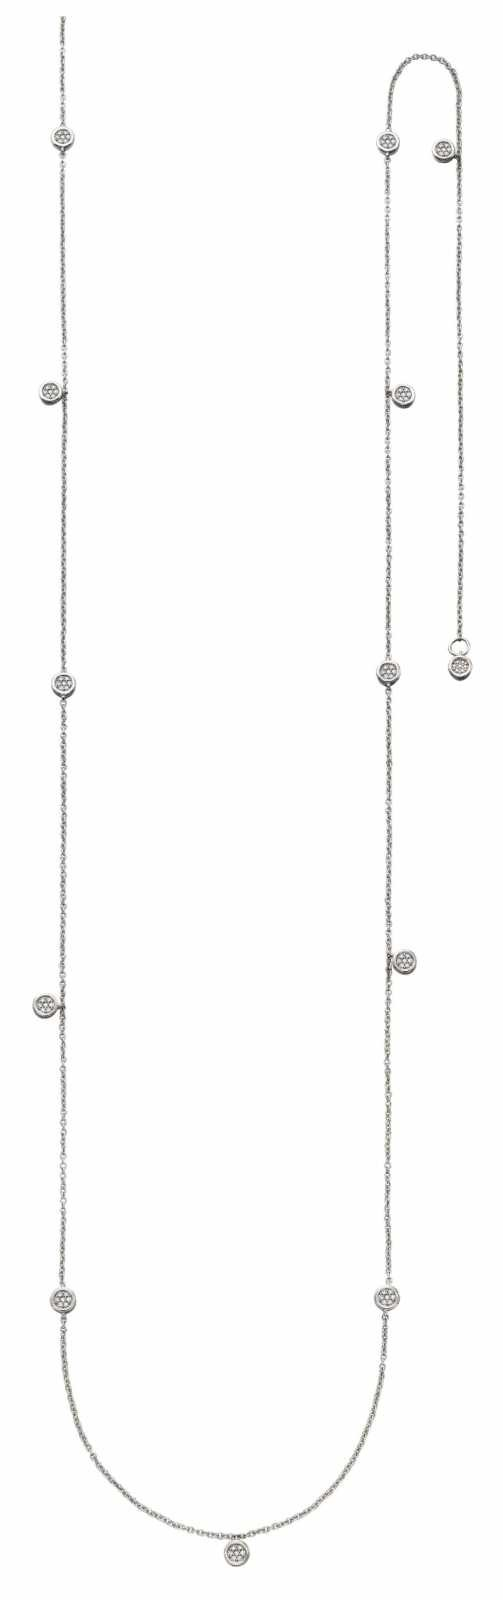 Elements Gold 9k White Gold Diamond Station Necklace GN340